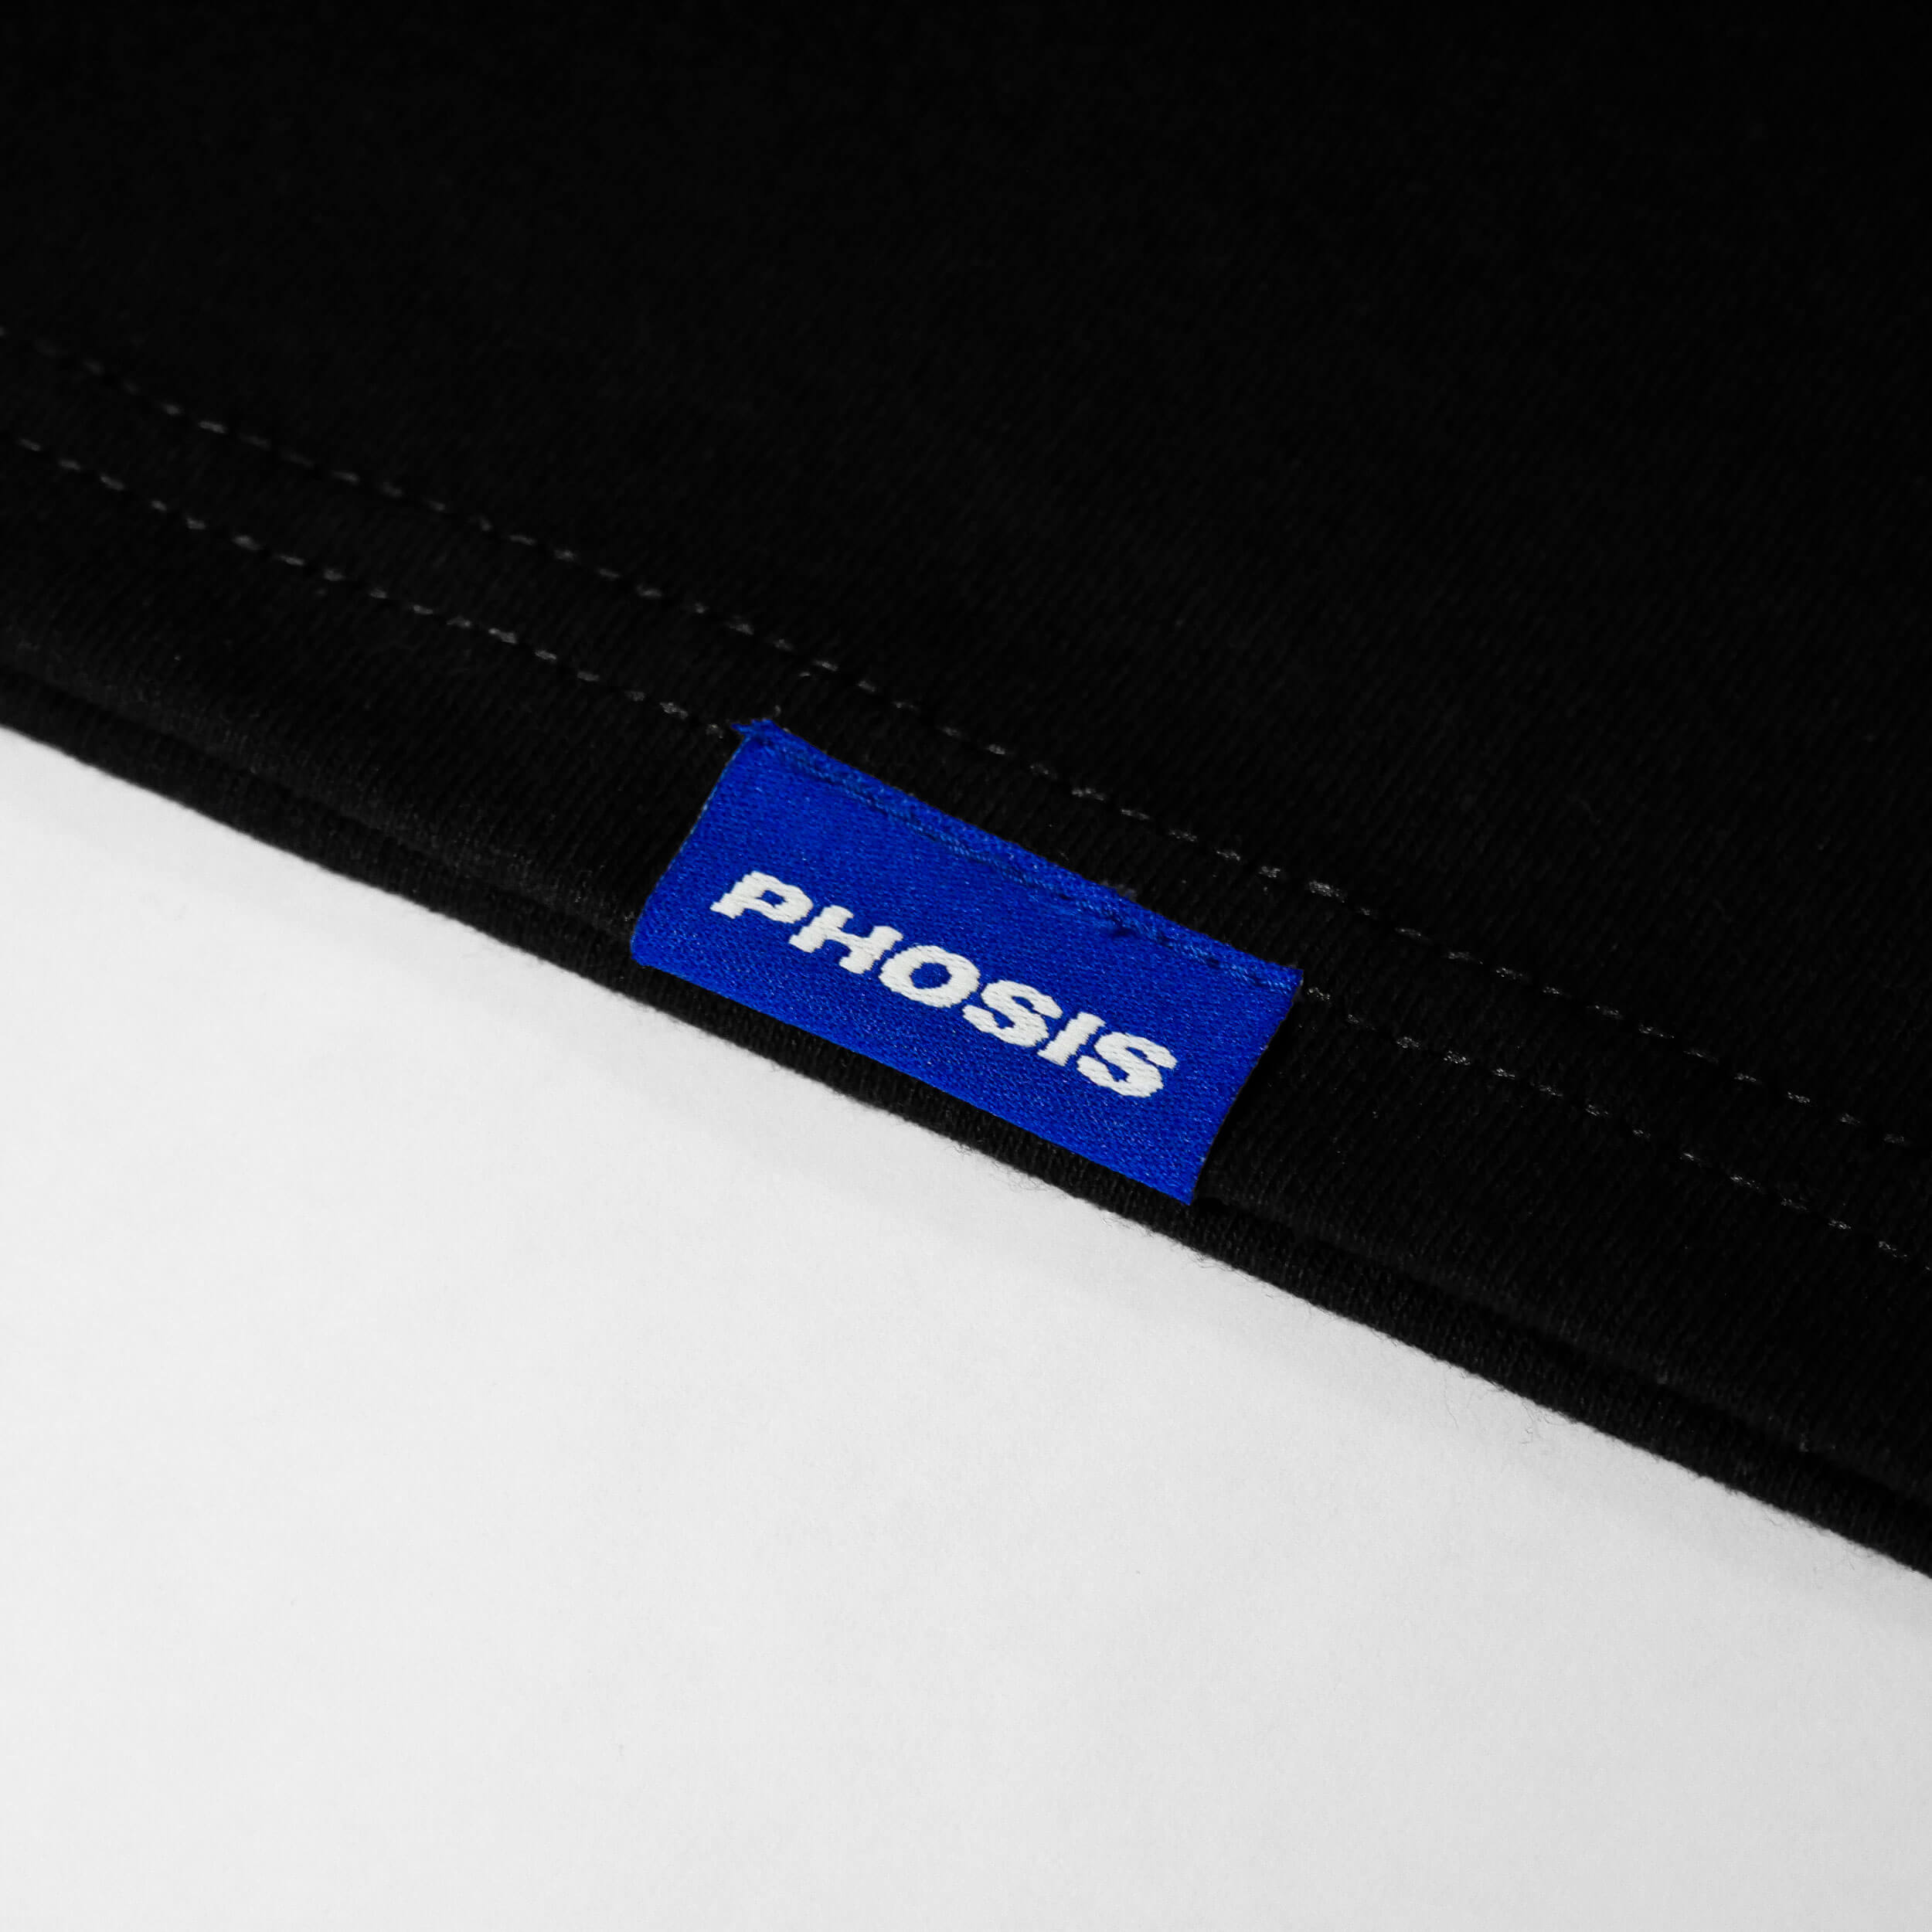 Close up view of the blue woven label in the 'WIRED' black t-shirt from PHOSIS Clothing